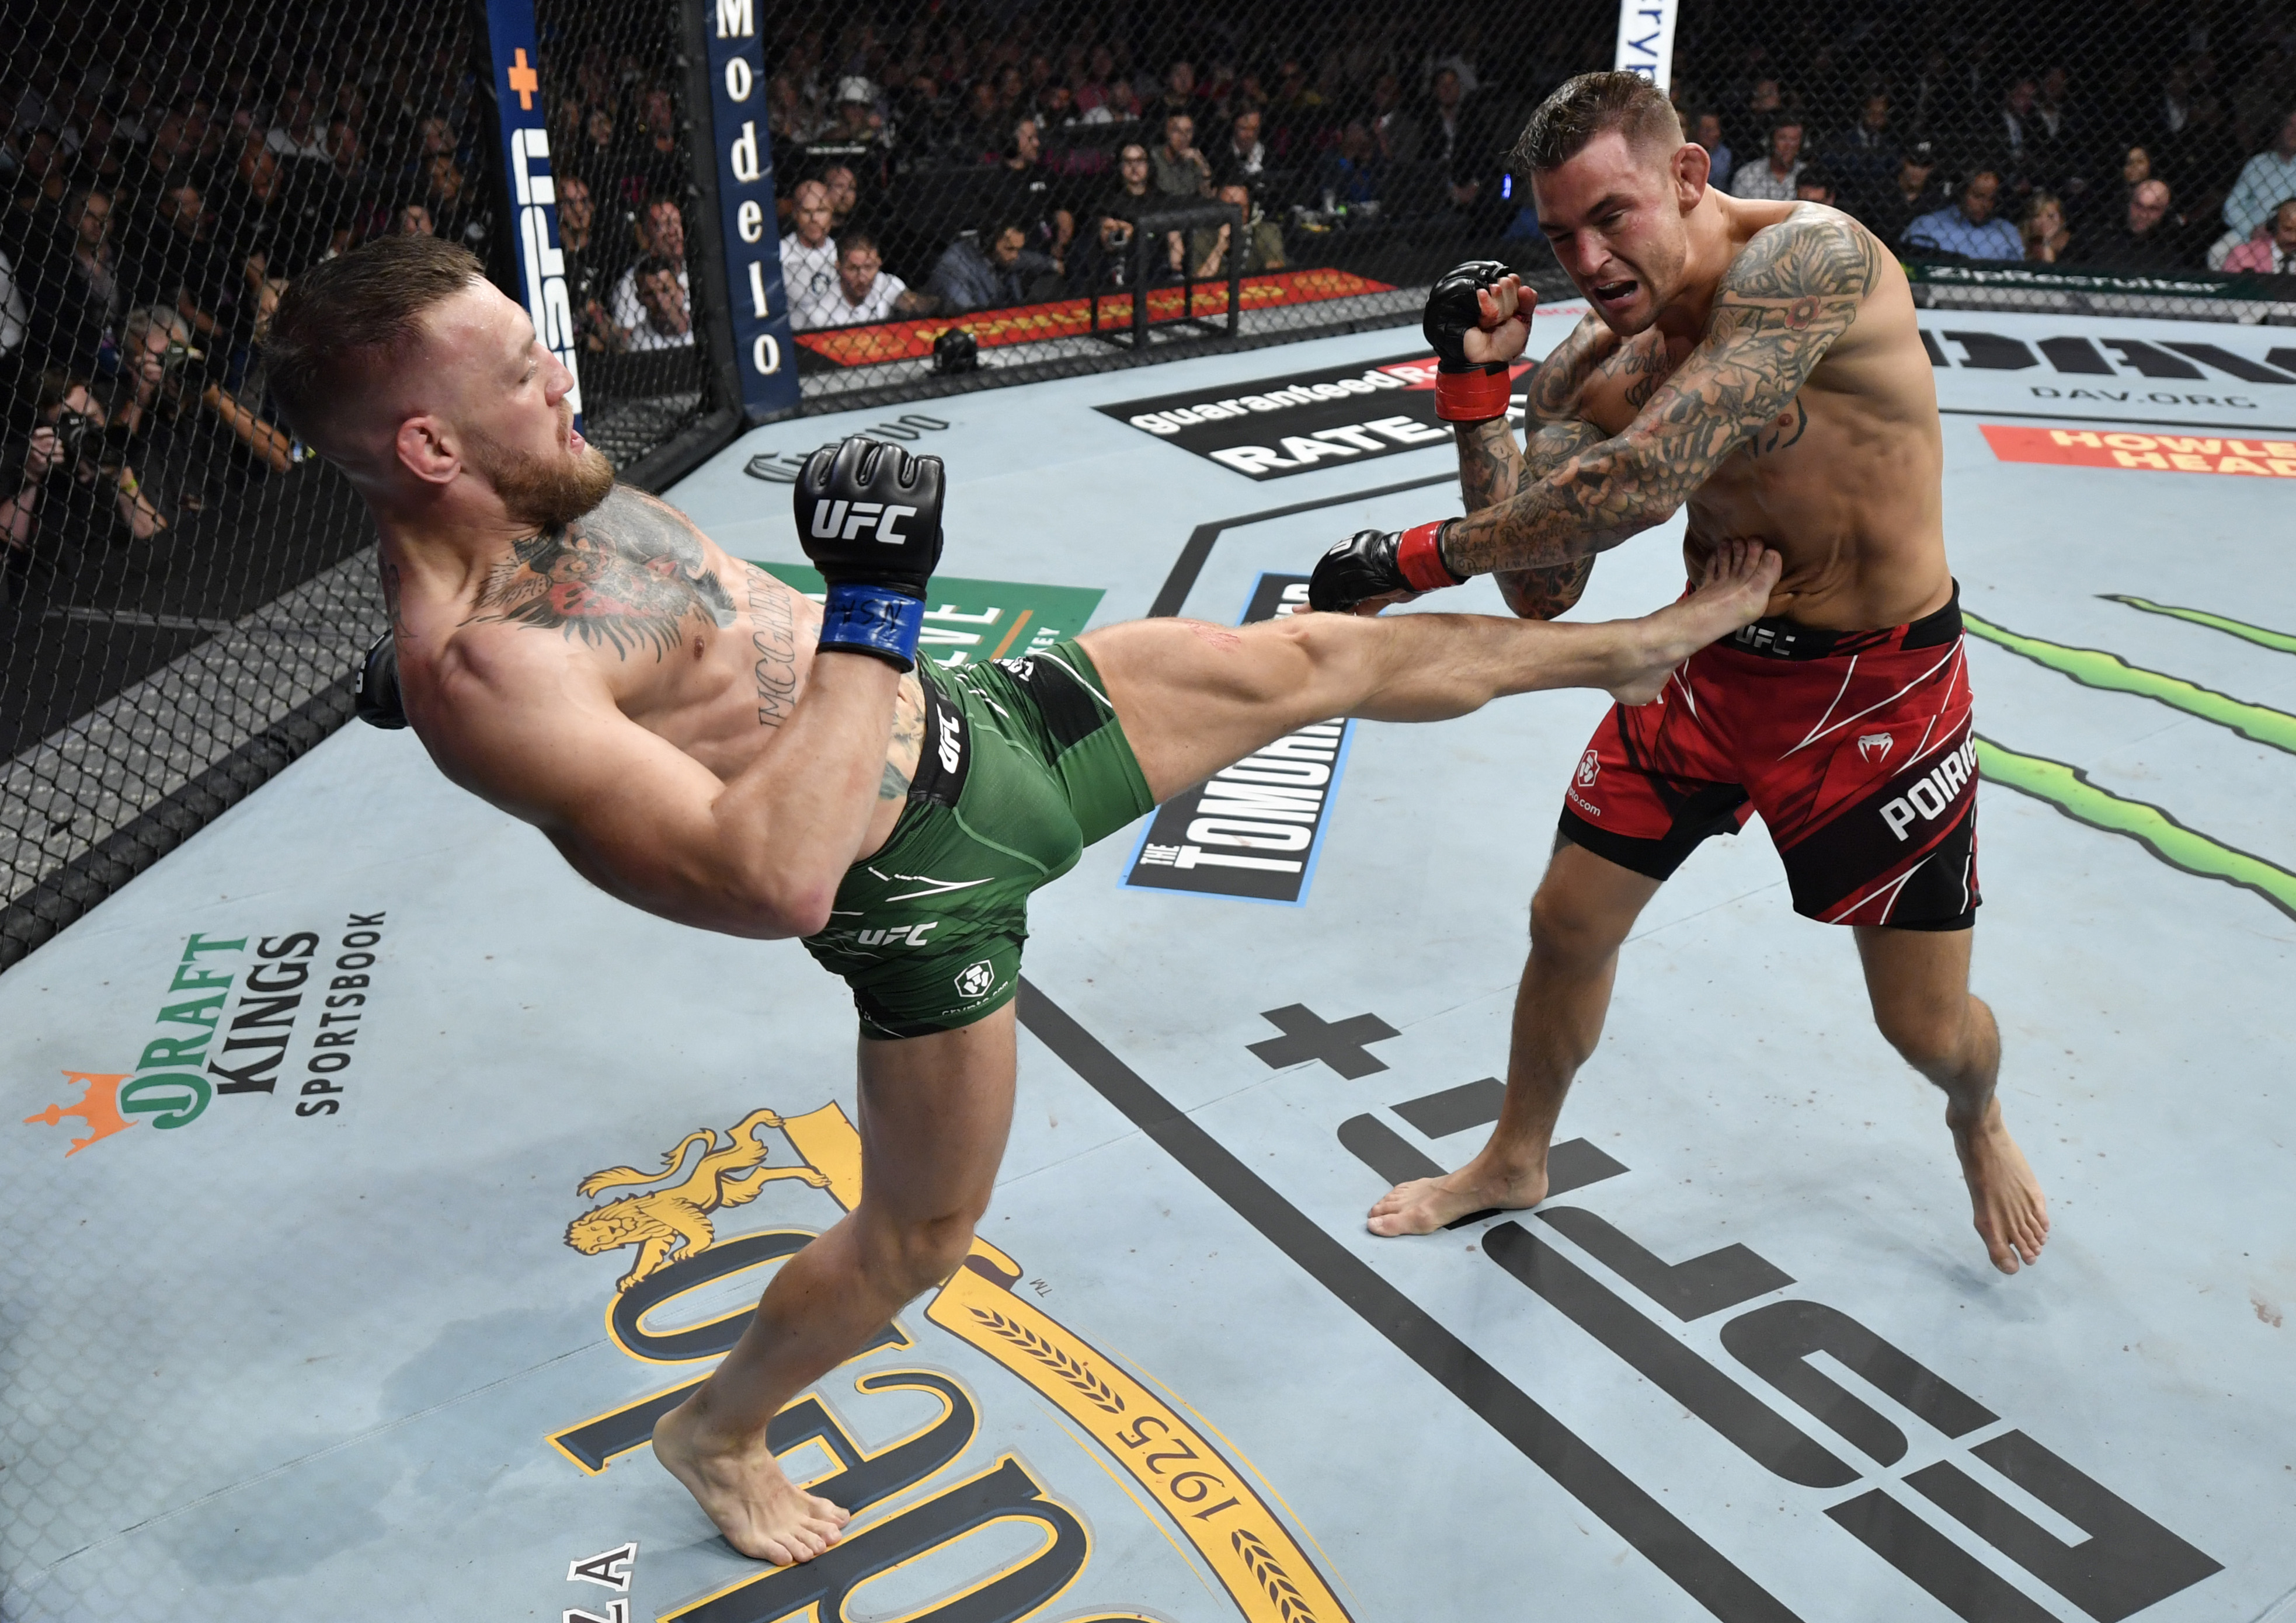 Conor McGregor said entered UFC 264 with stress fractures on his left leg, which likely led to his injury.